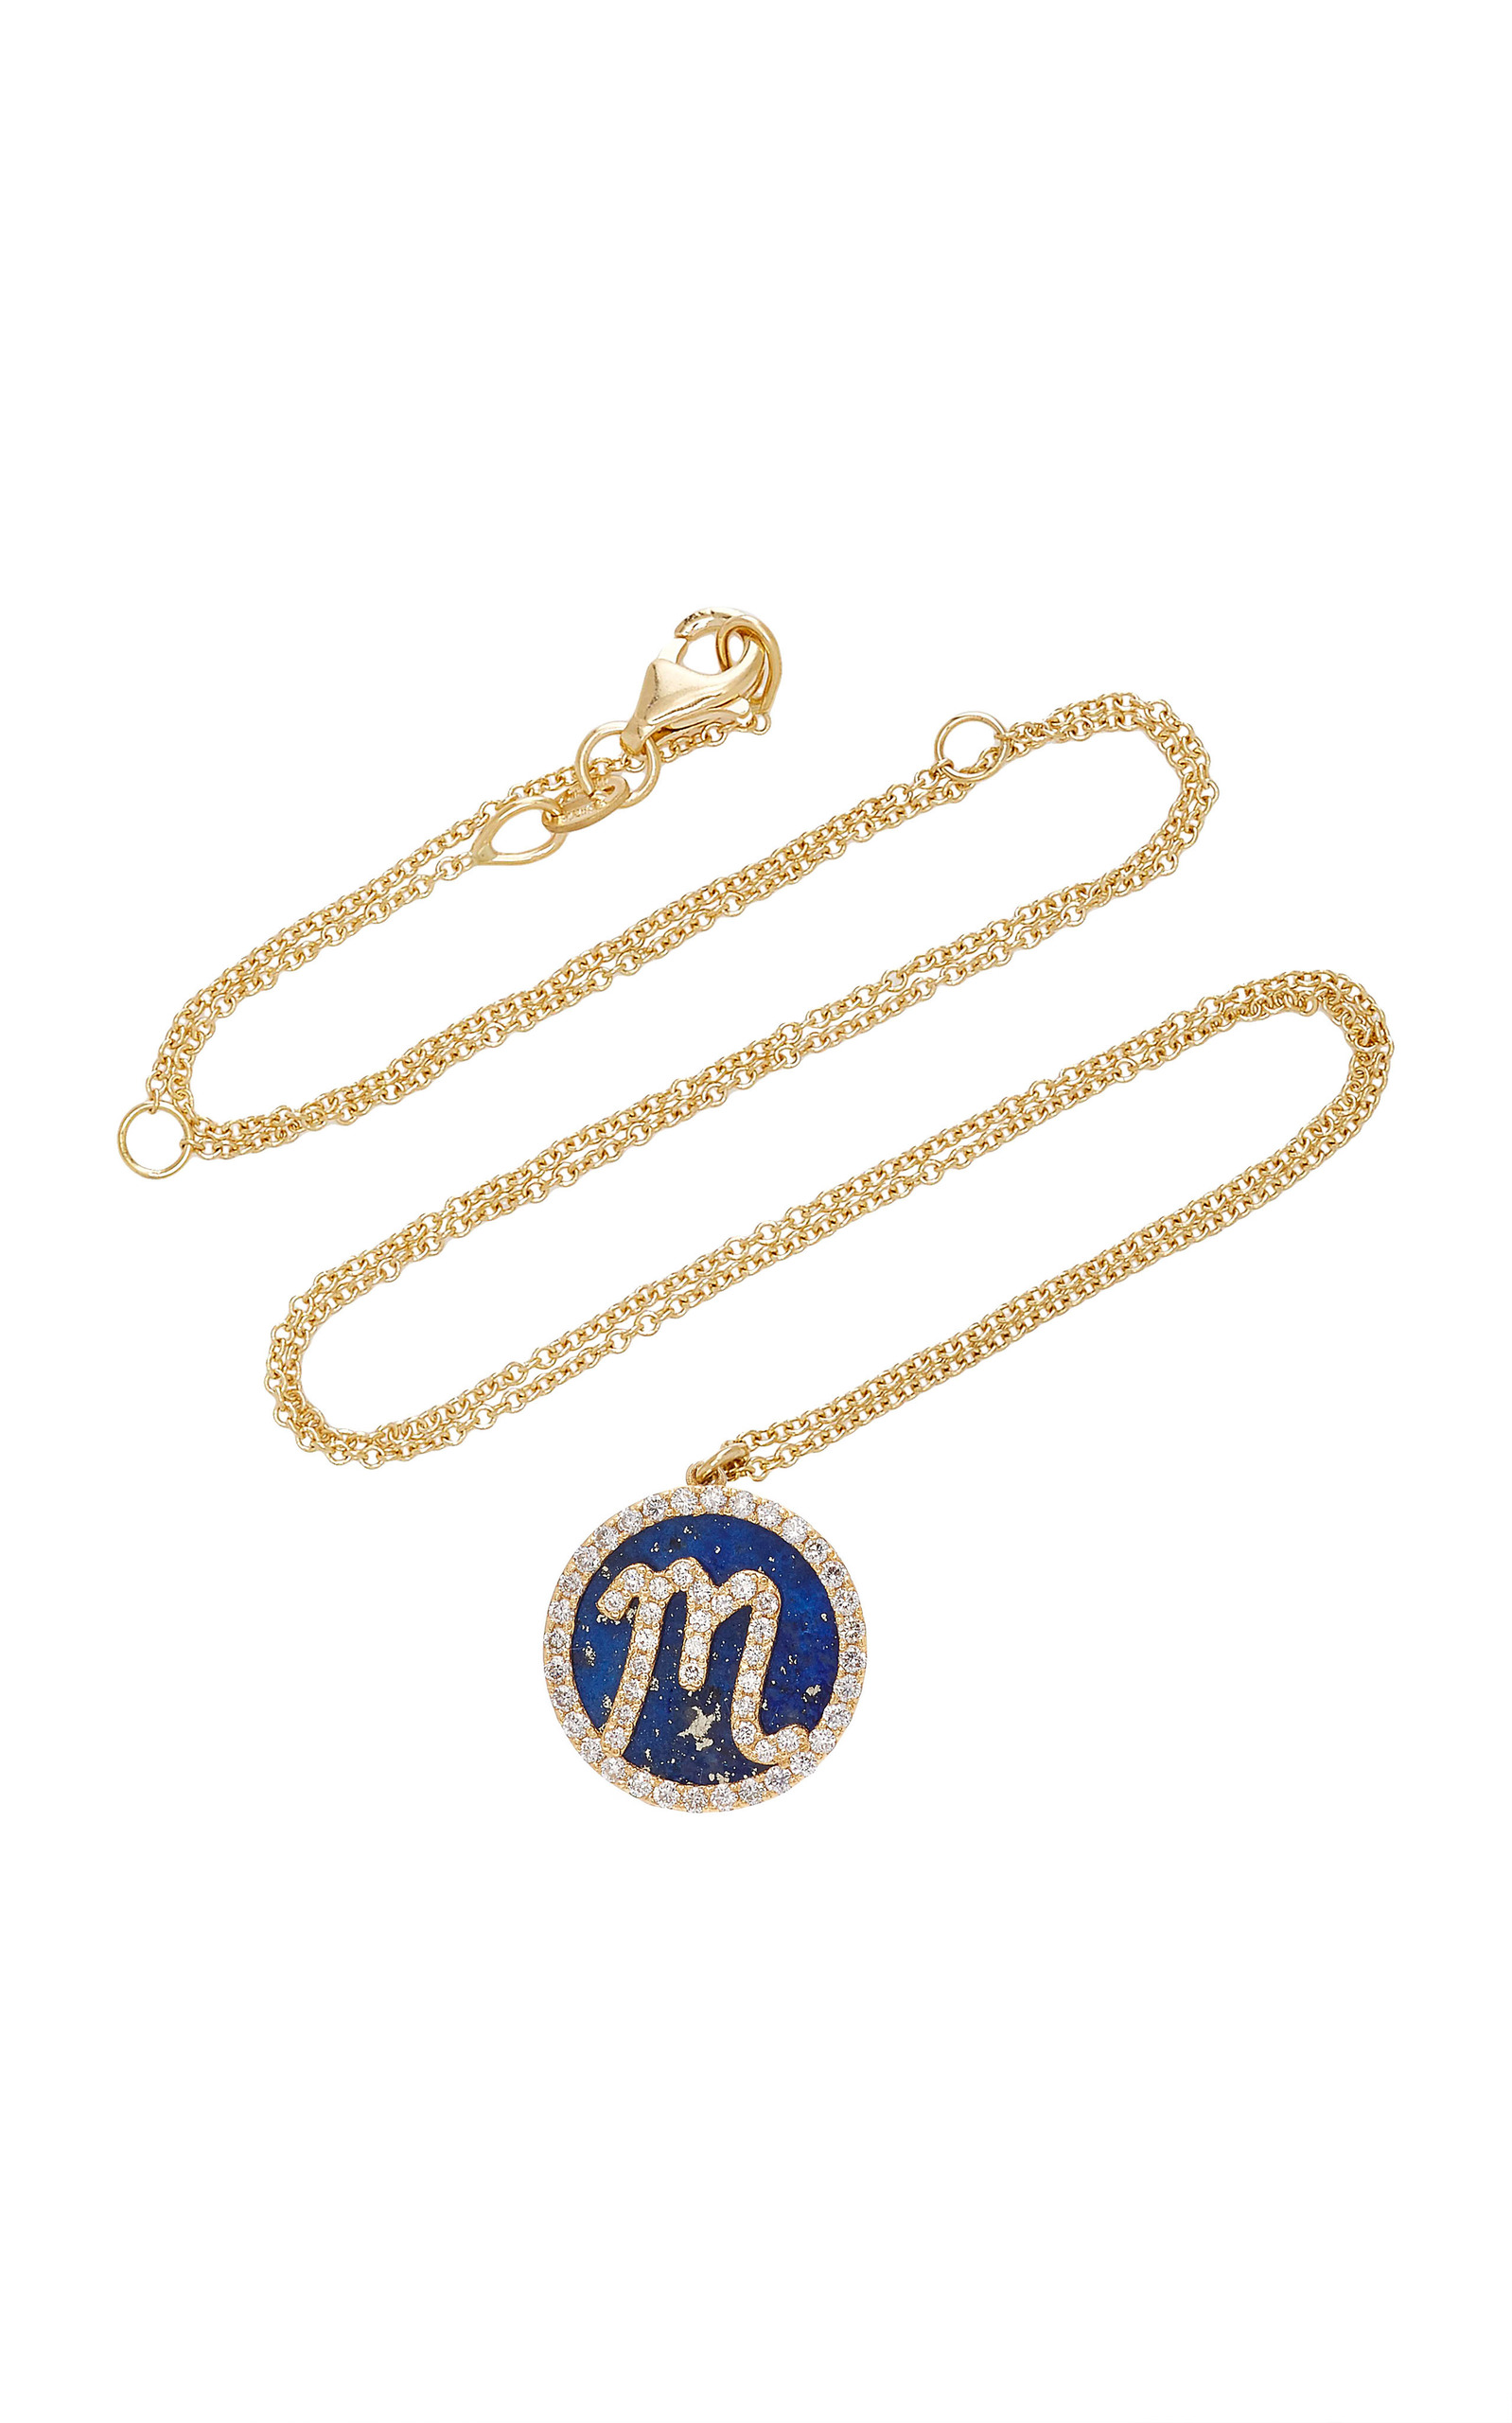 NAMES BY NOUSH M'O EXCLUSIVE: TREASURE DISK ROMAN INITIAL NECKLACE WITH LAPIS LAZULI GEMSTONE